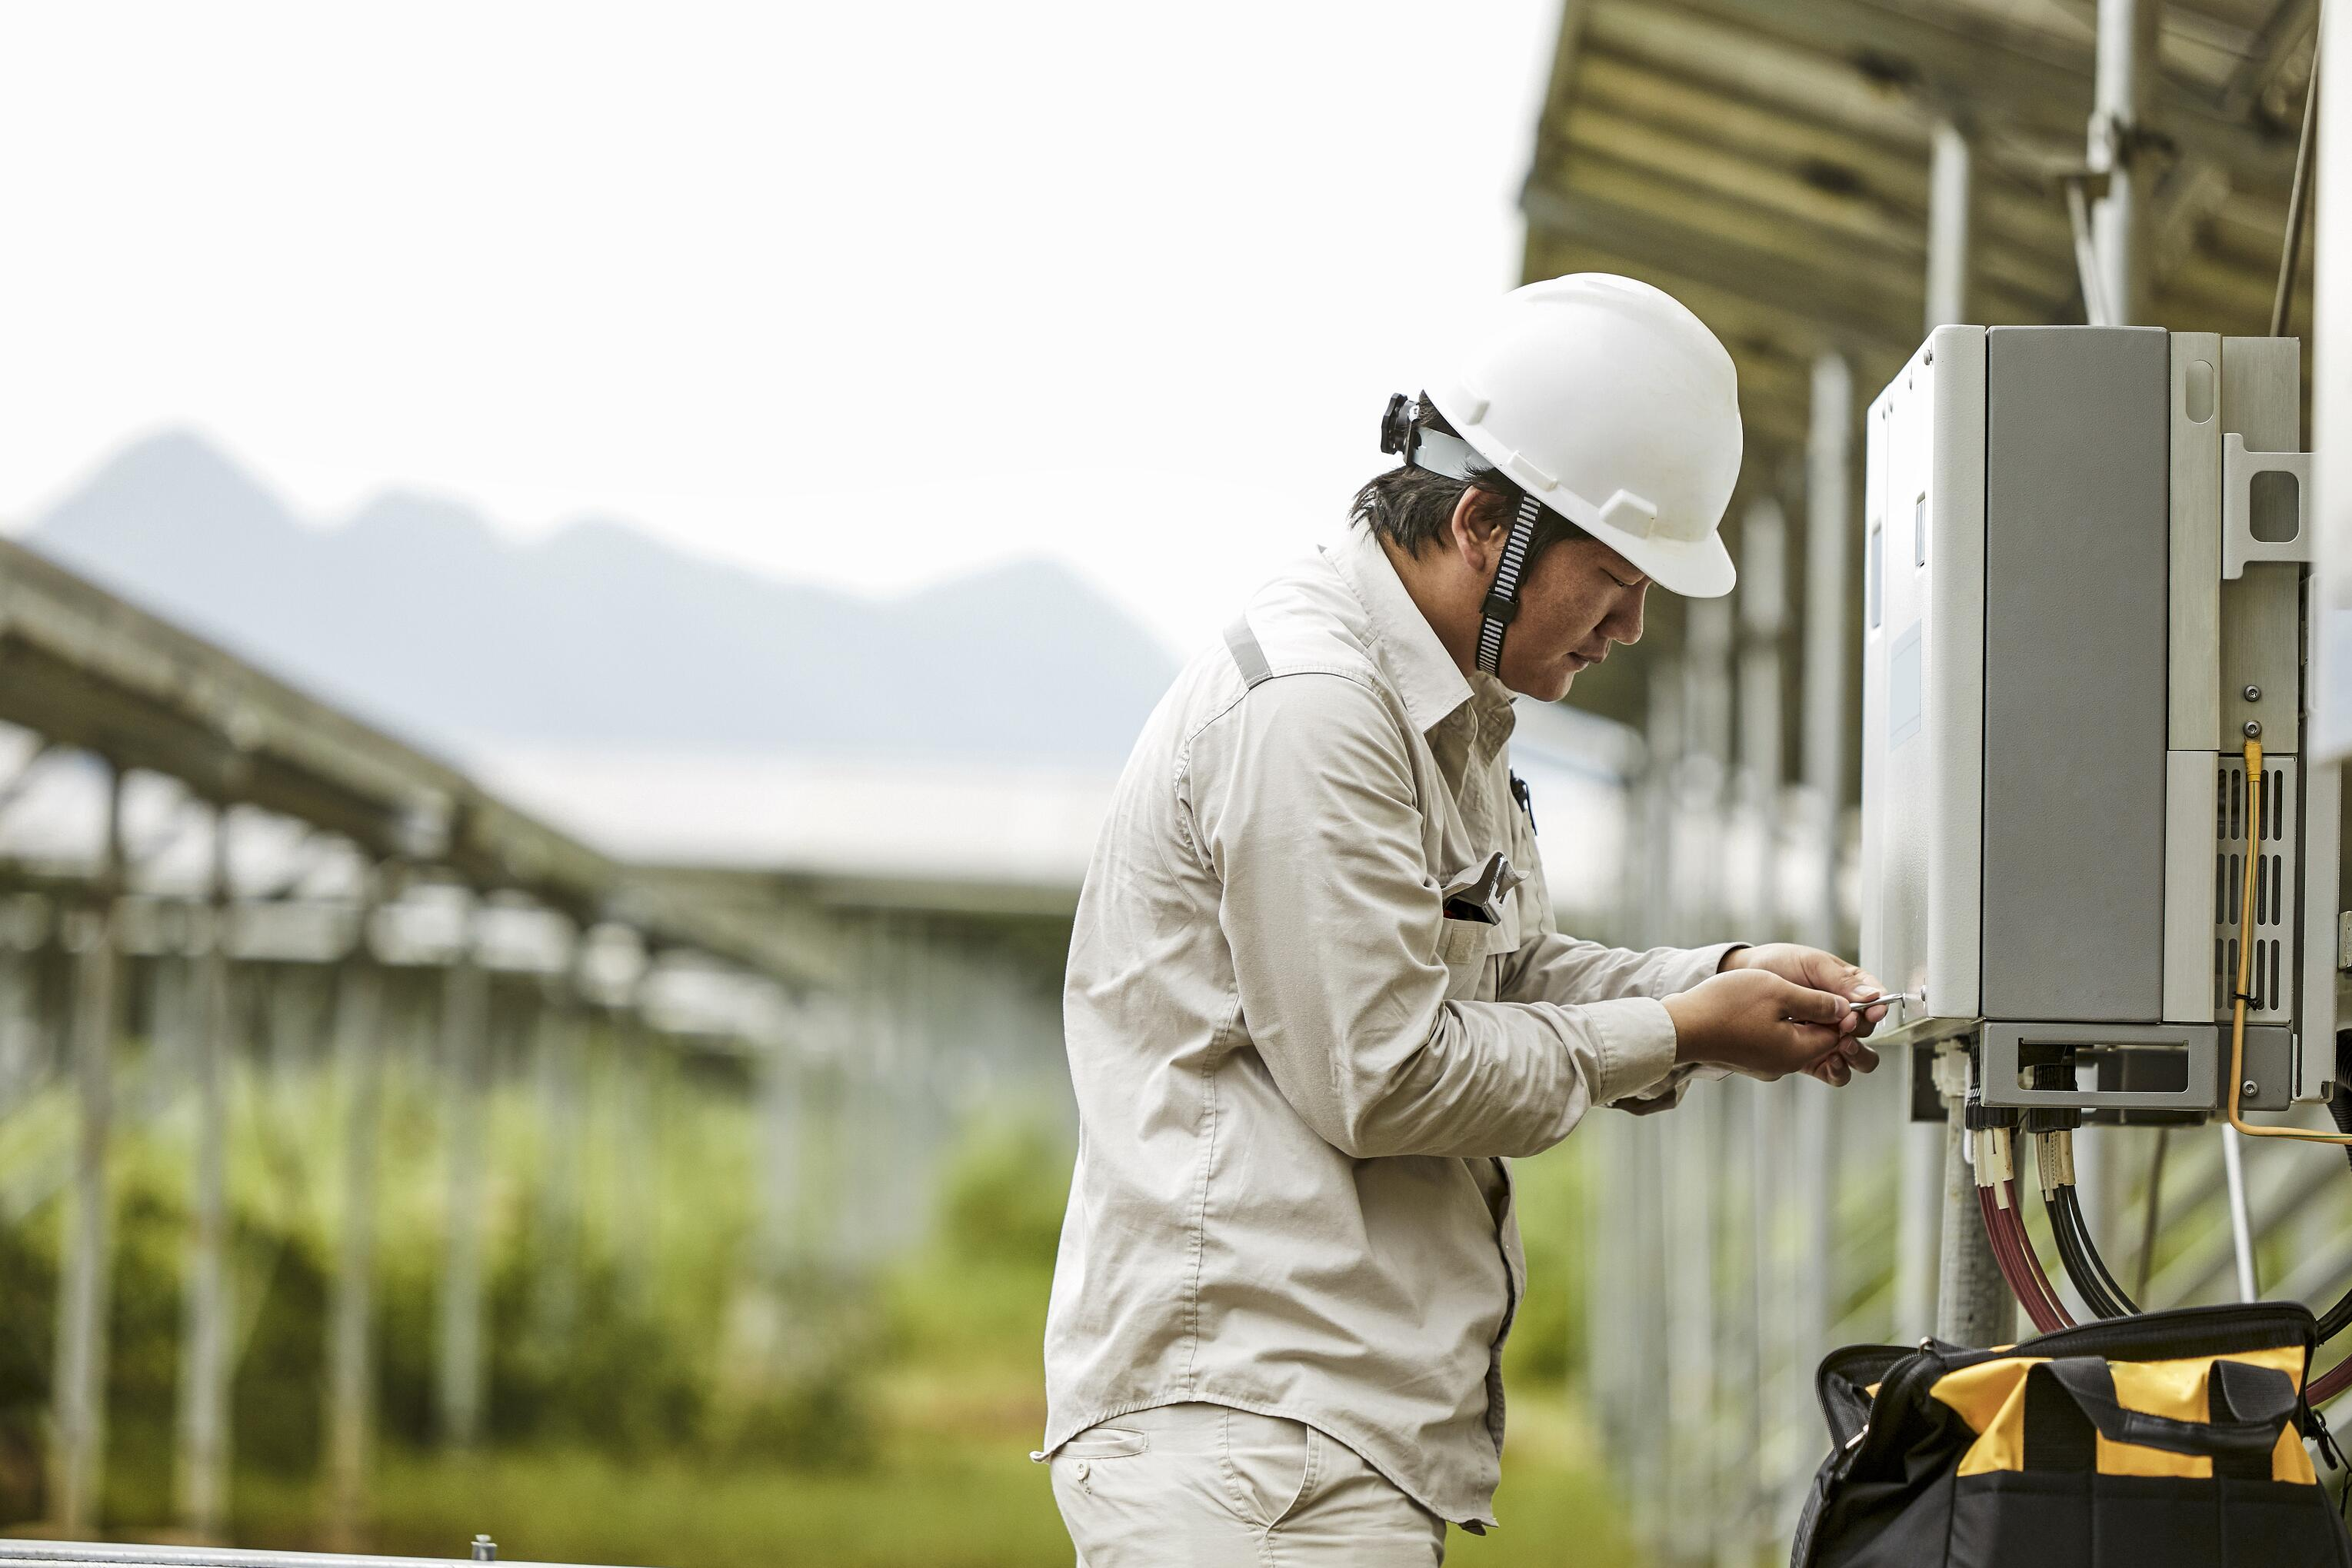 Engineer Photo Voltaic System Field Service